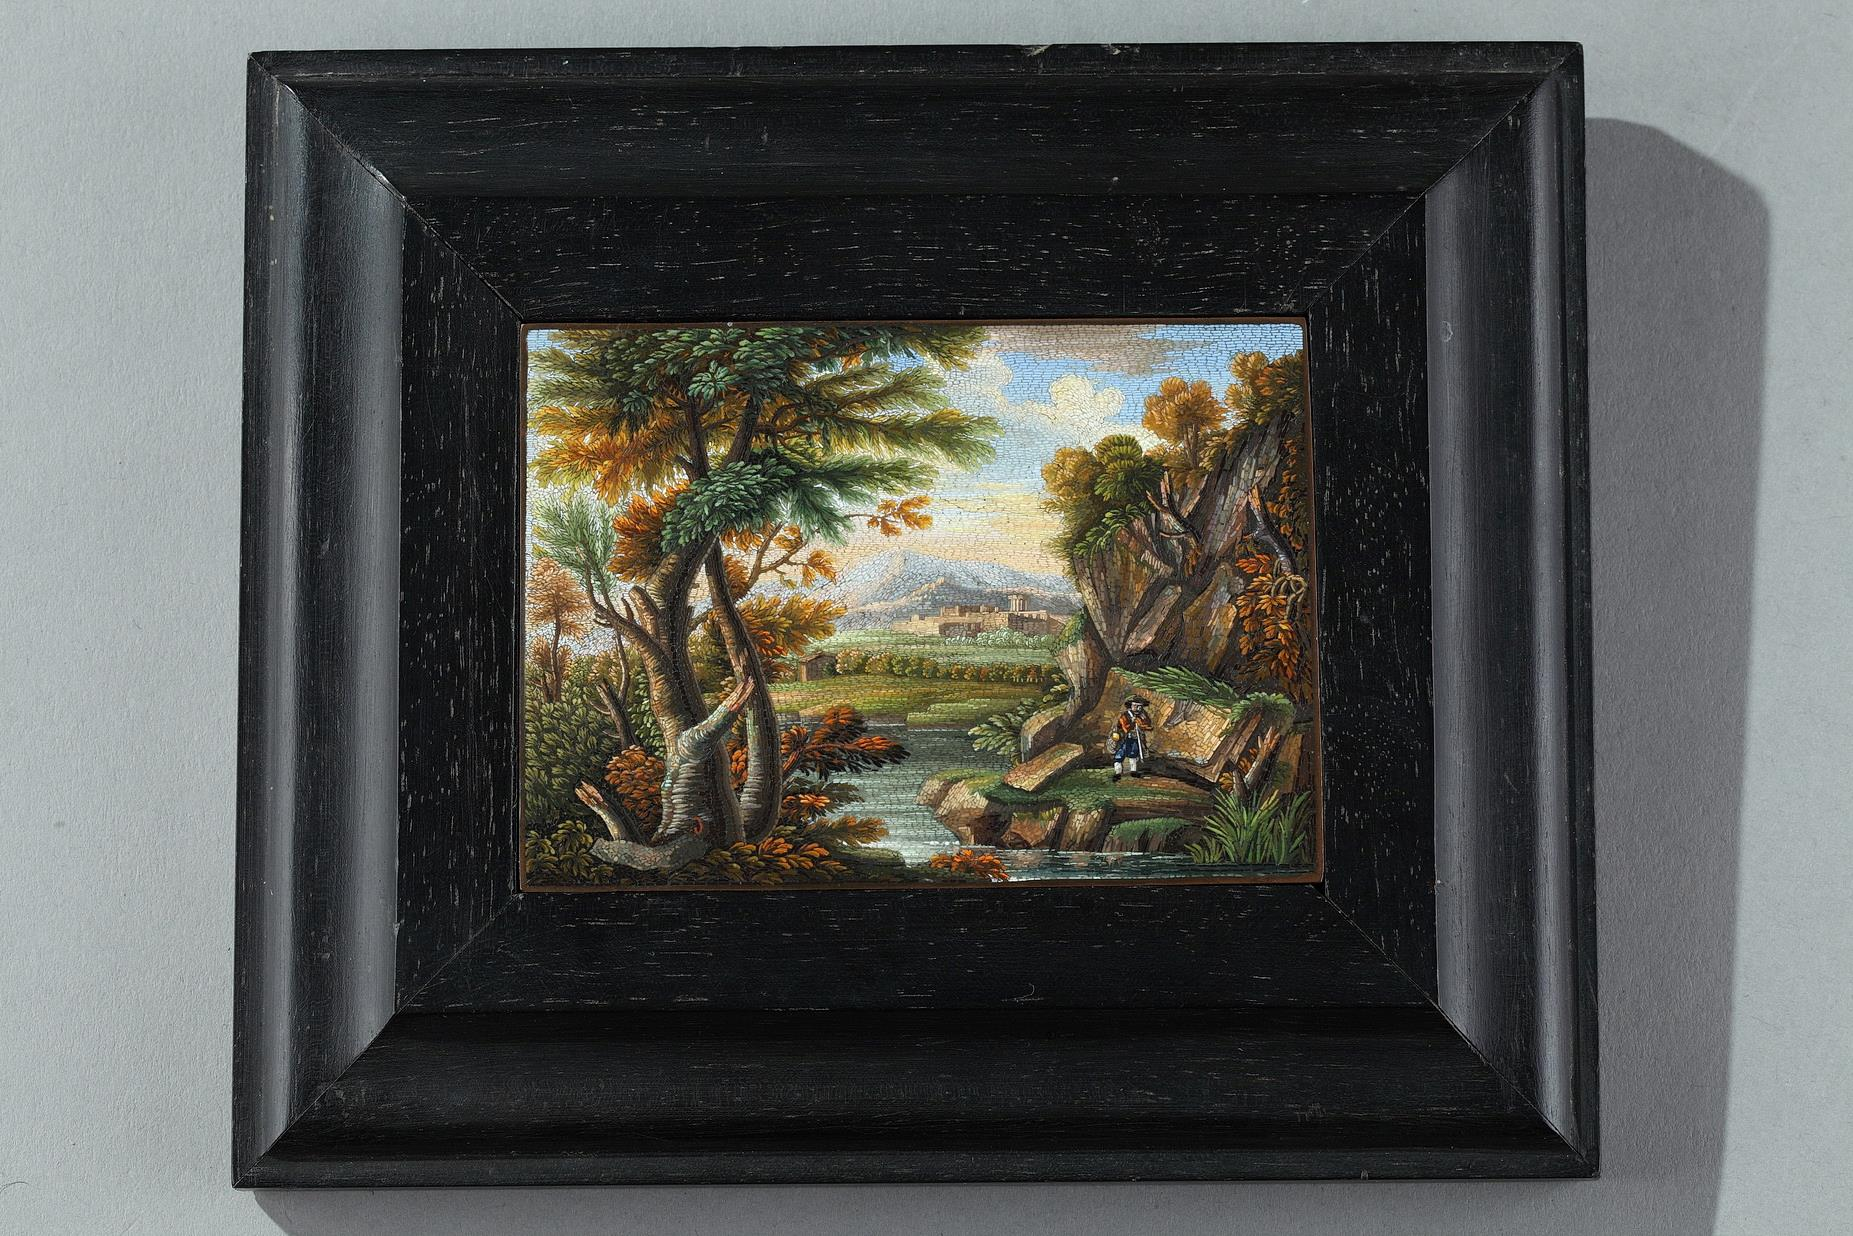 Micromosaic plaque with river landscape.